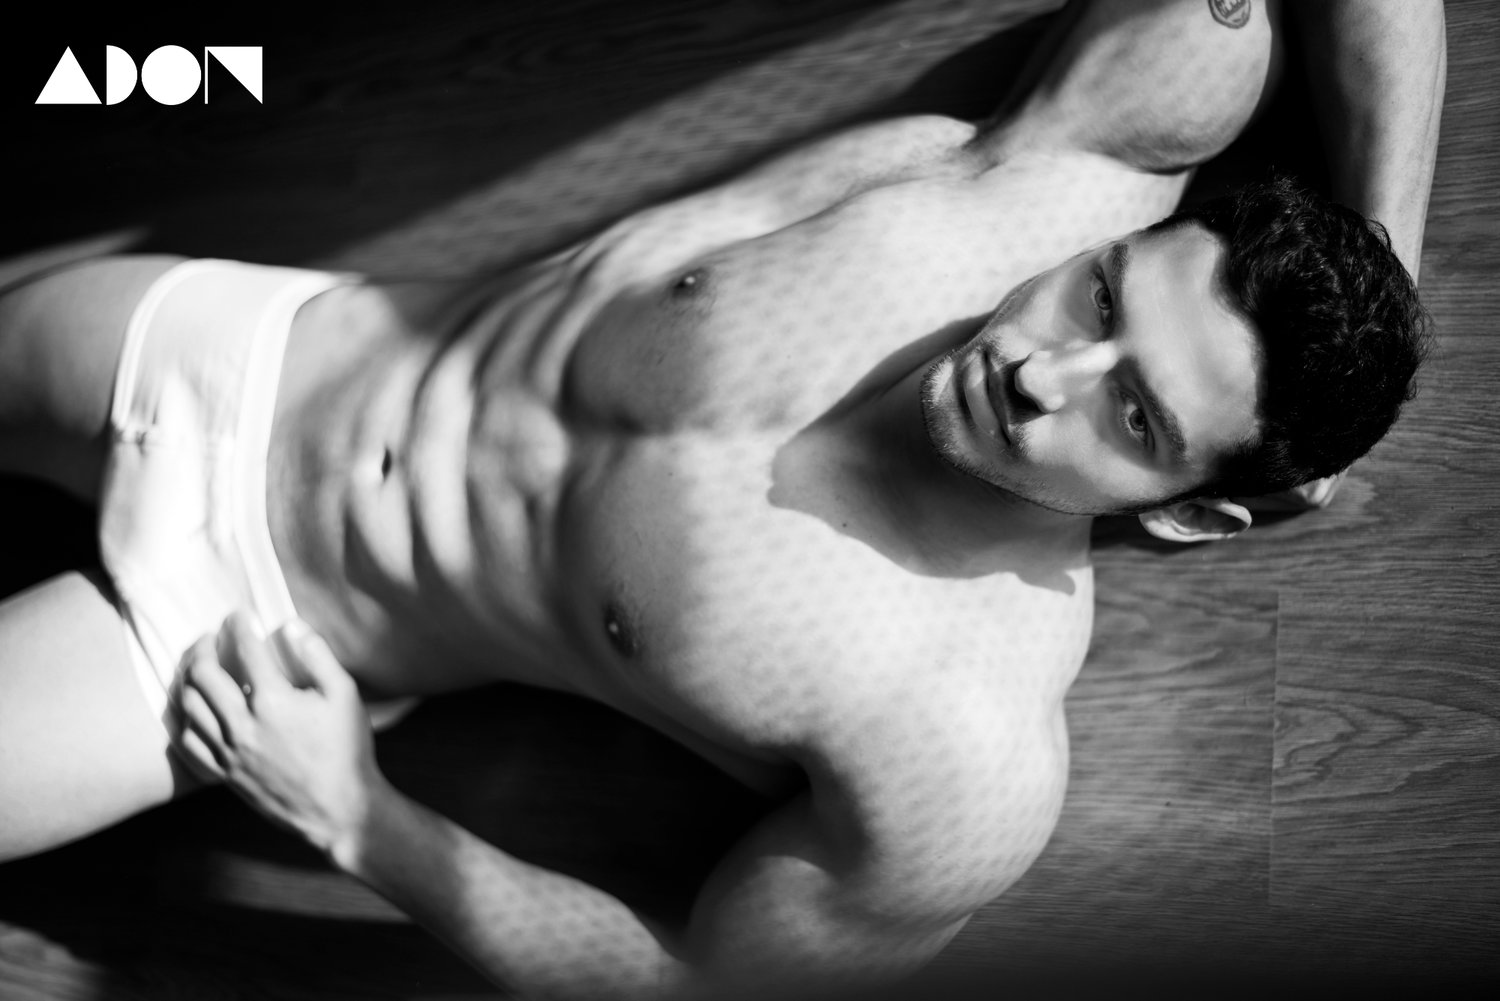 Adon Exclusive: Model George Petri By Stavros Christodoulou